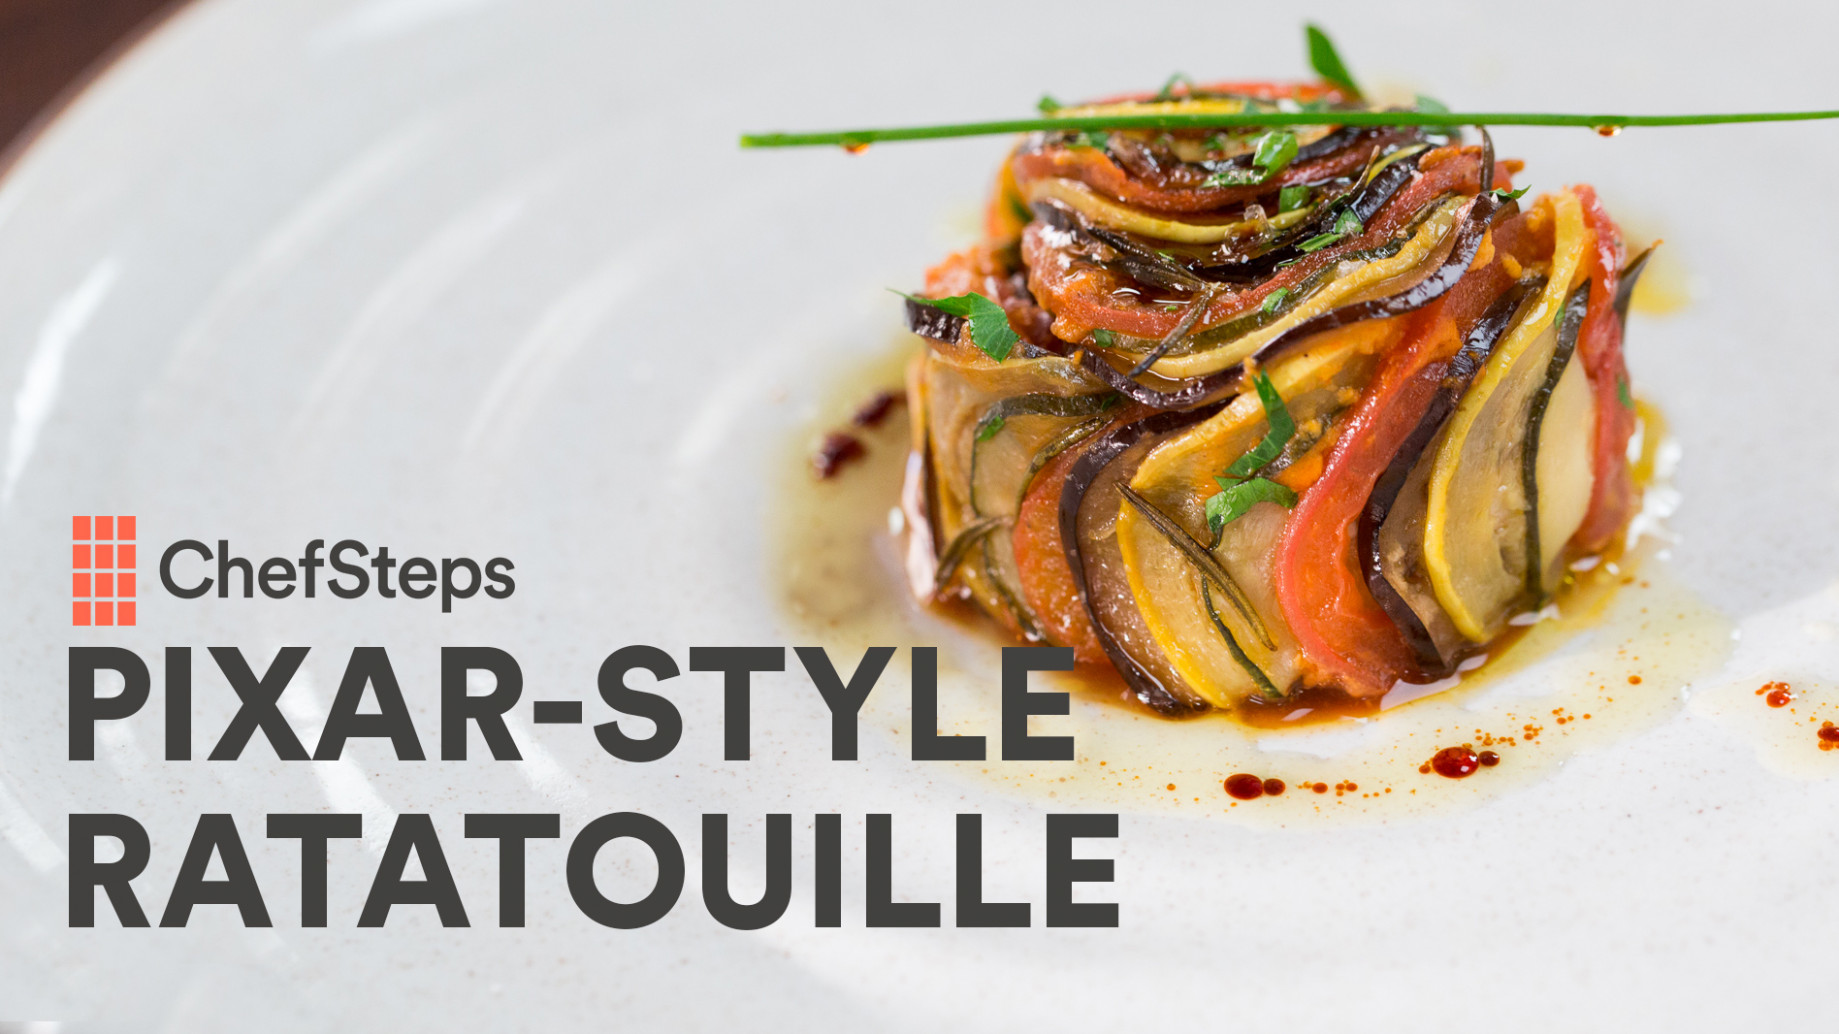 Get Creative with Pixar-Style Ratatouille | ChefSteps ...